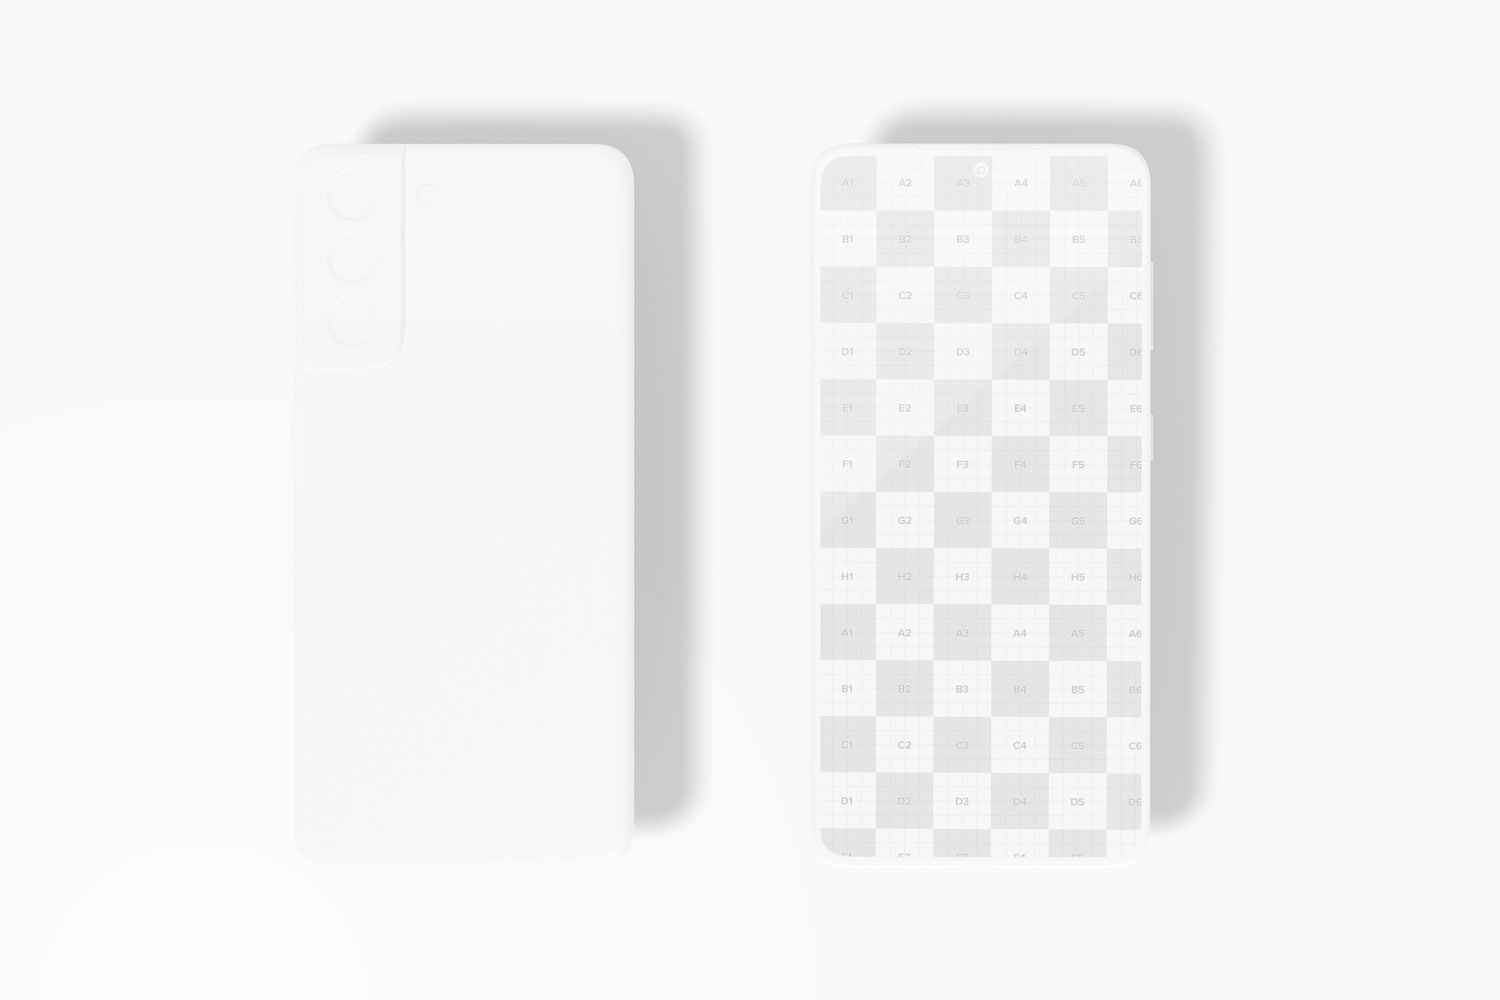 Clay Samsung S21 Mockup, Front and Back View